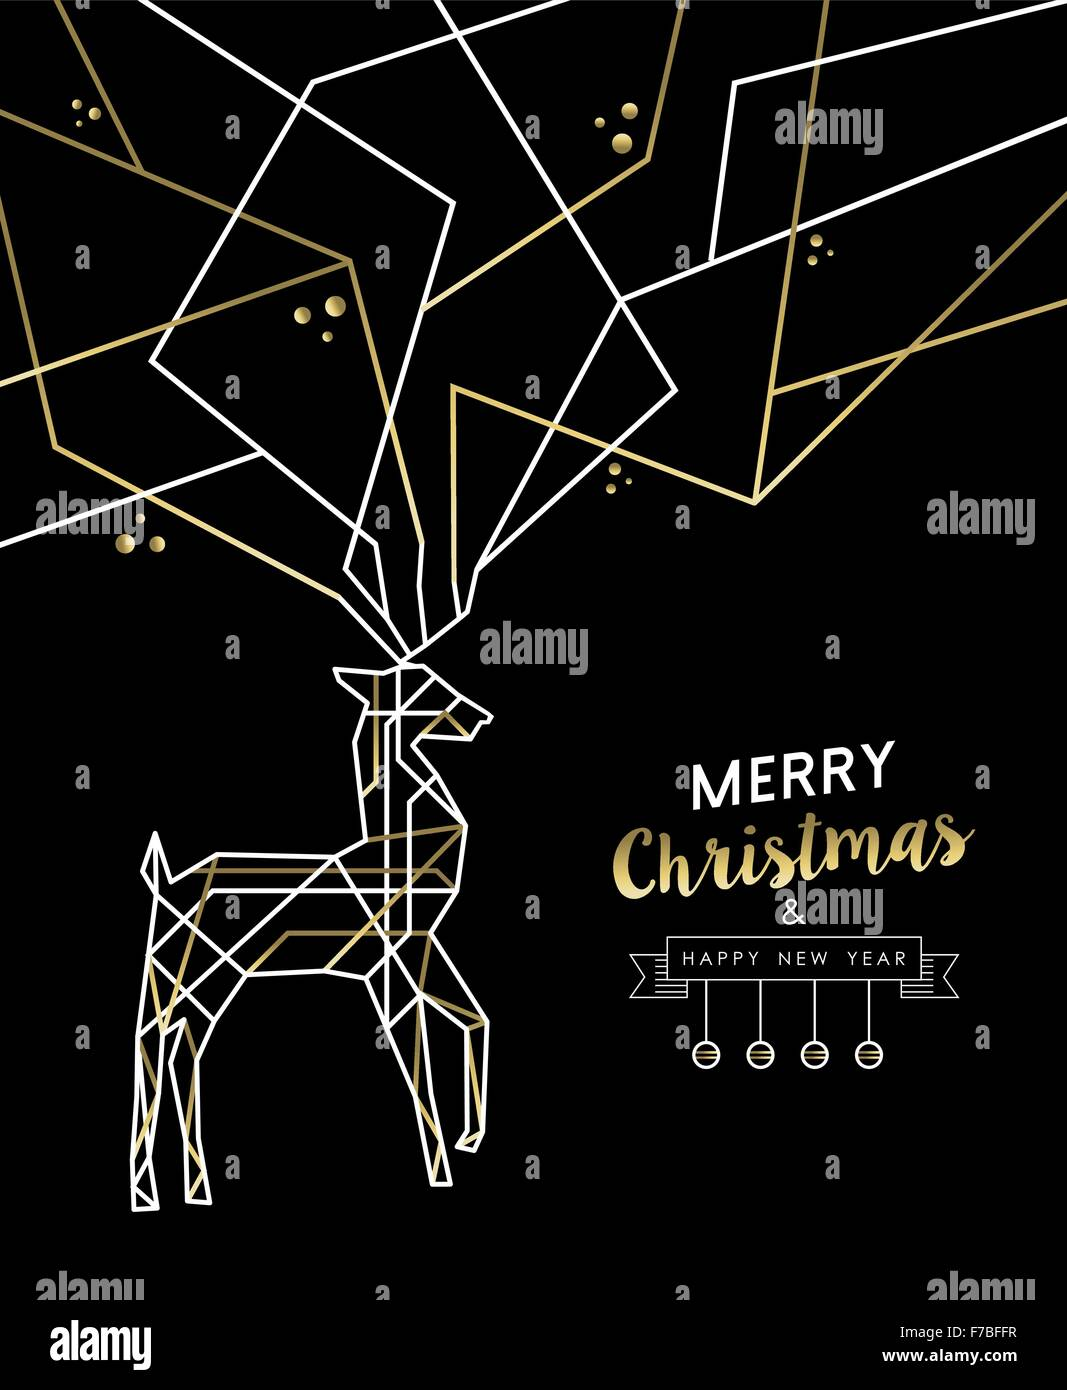 merry christmas happy new year gold and white deer outline art deco style antlers ideal for holiday greeting card xmas poster